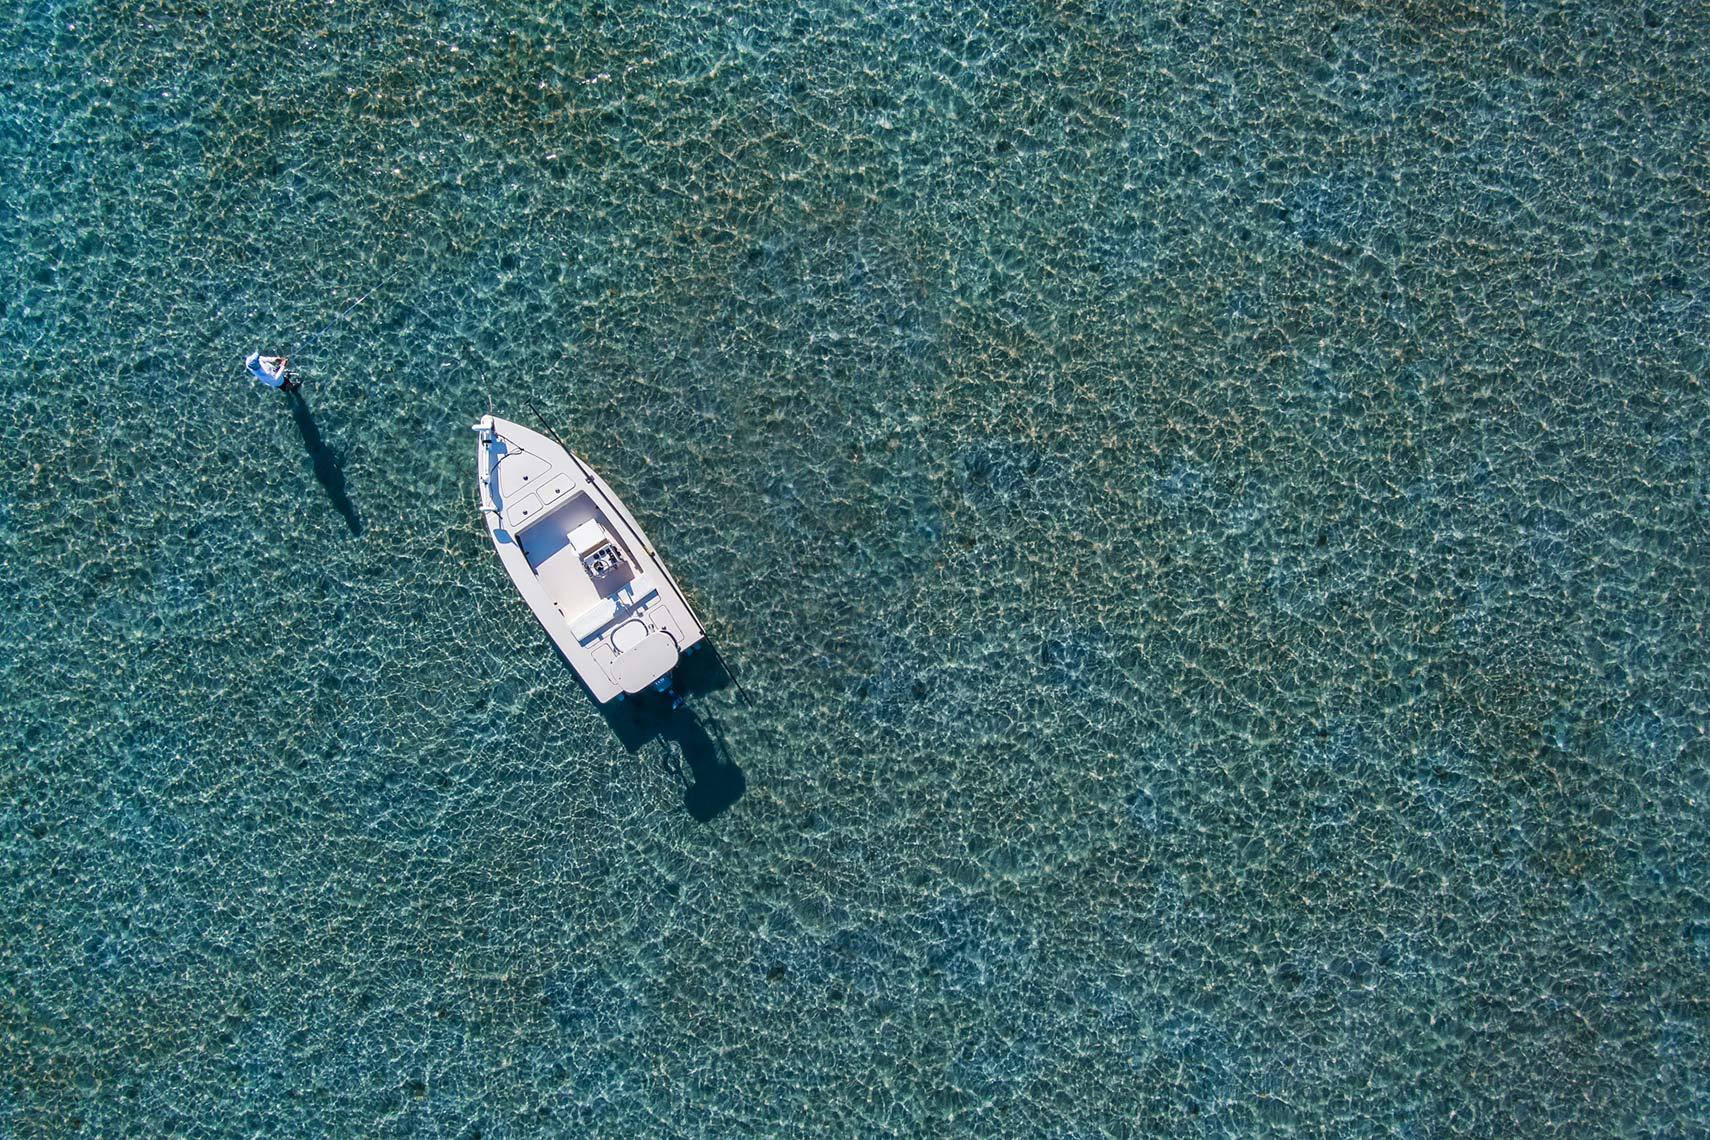 MAX_0088_aerial-view-man-and-boat-fishing-in-flats-shallow-water_Robert-Holland